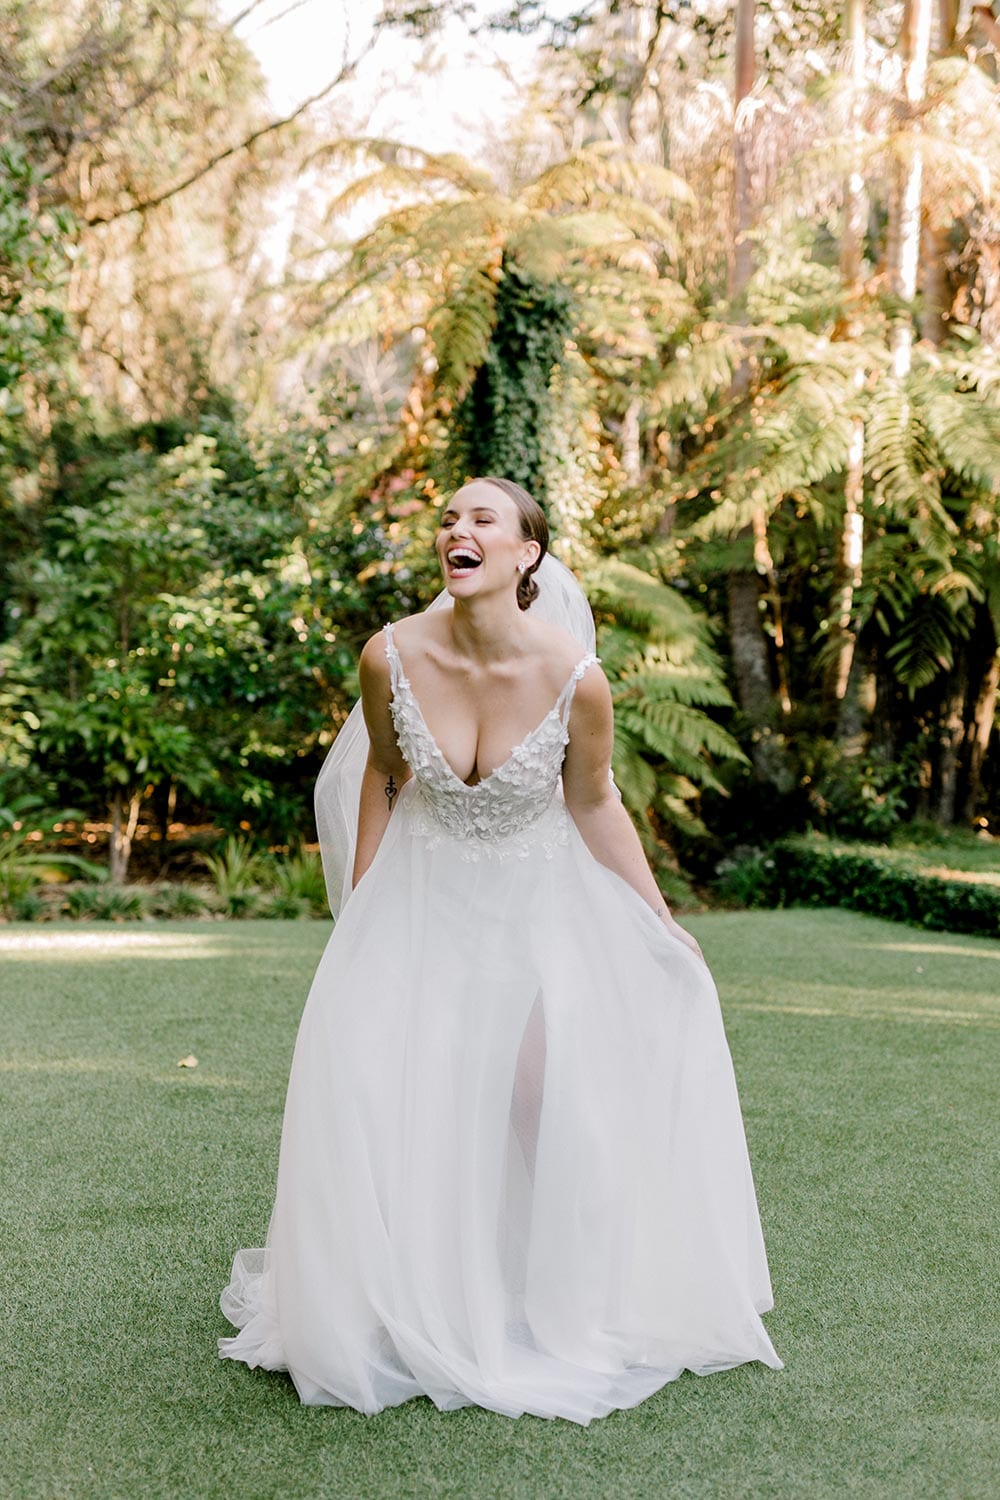 Serena Wedding Gown from Vinka Design - Classic & feminine wedding gown. Deep V-neckline semi-sheer structured bodice appliqued with flowers & leaves. Dreamy layered soft tulle skirt with side-split. Model leaning forward. Photograph in landscaped gardens.